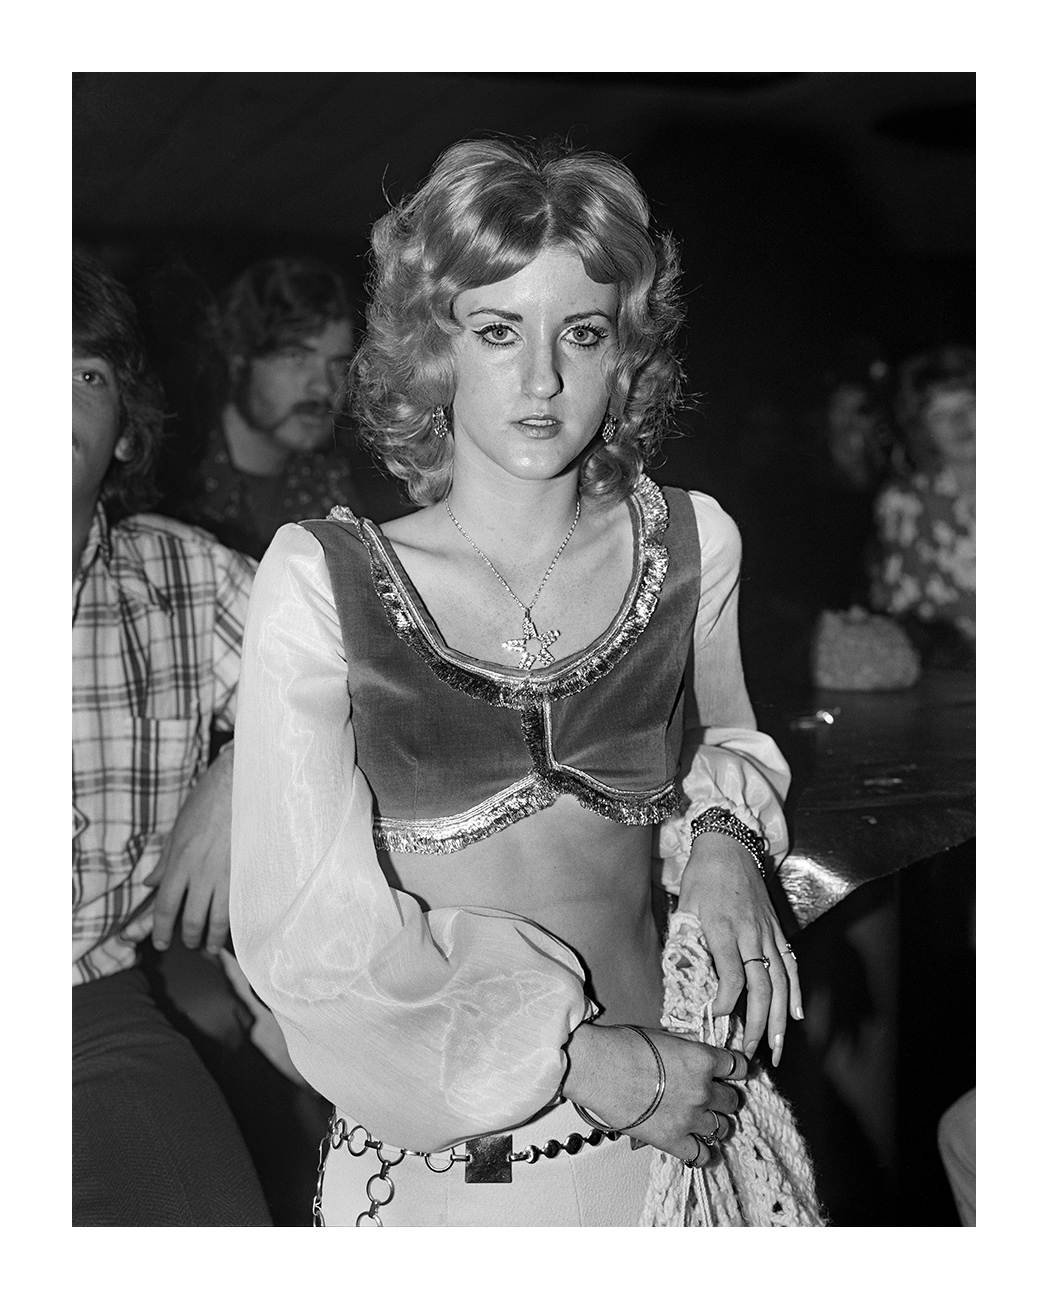 Girl in Costume at a Nightclub, Detroit 1973